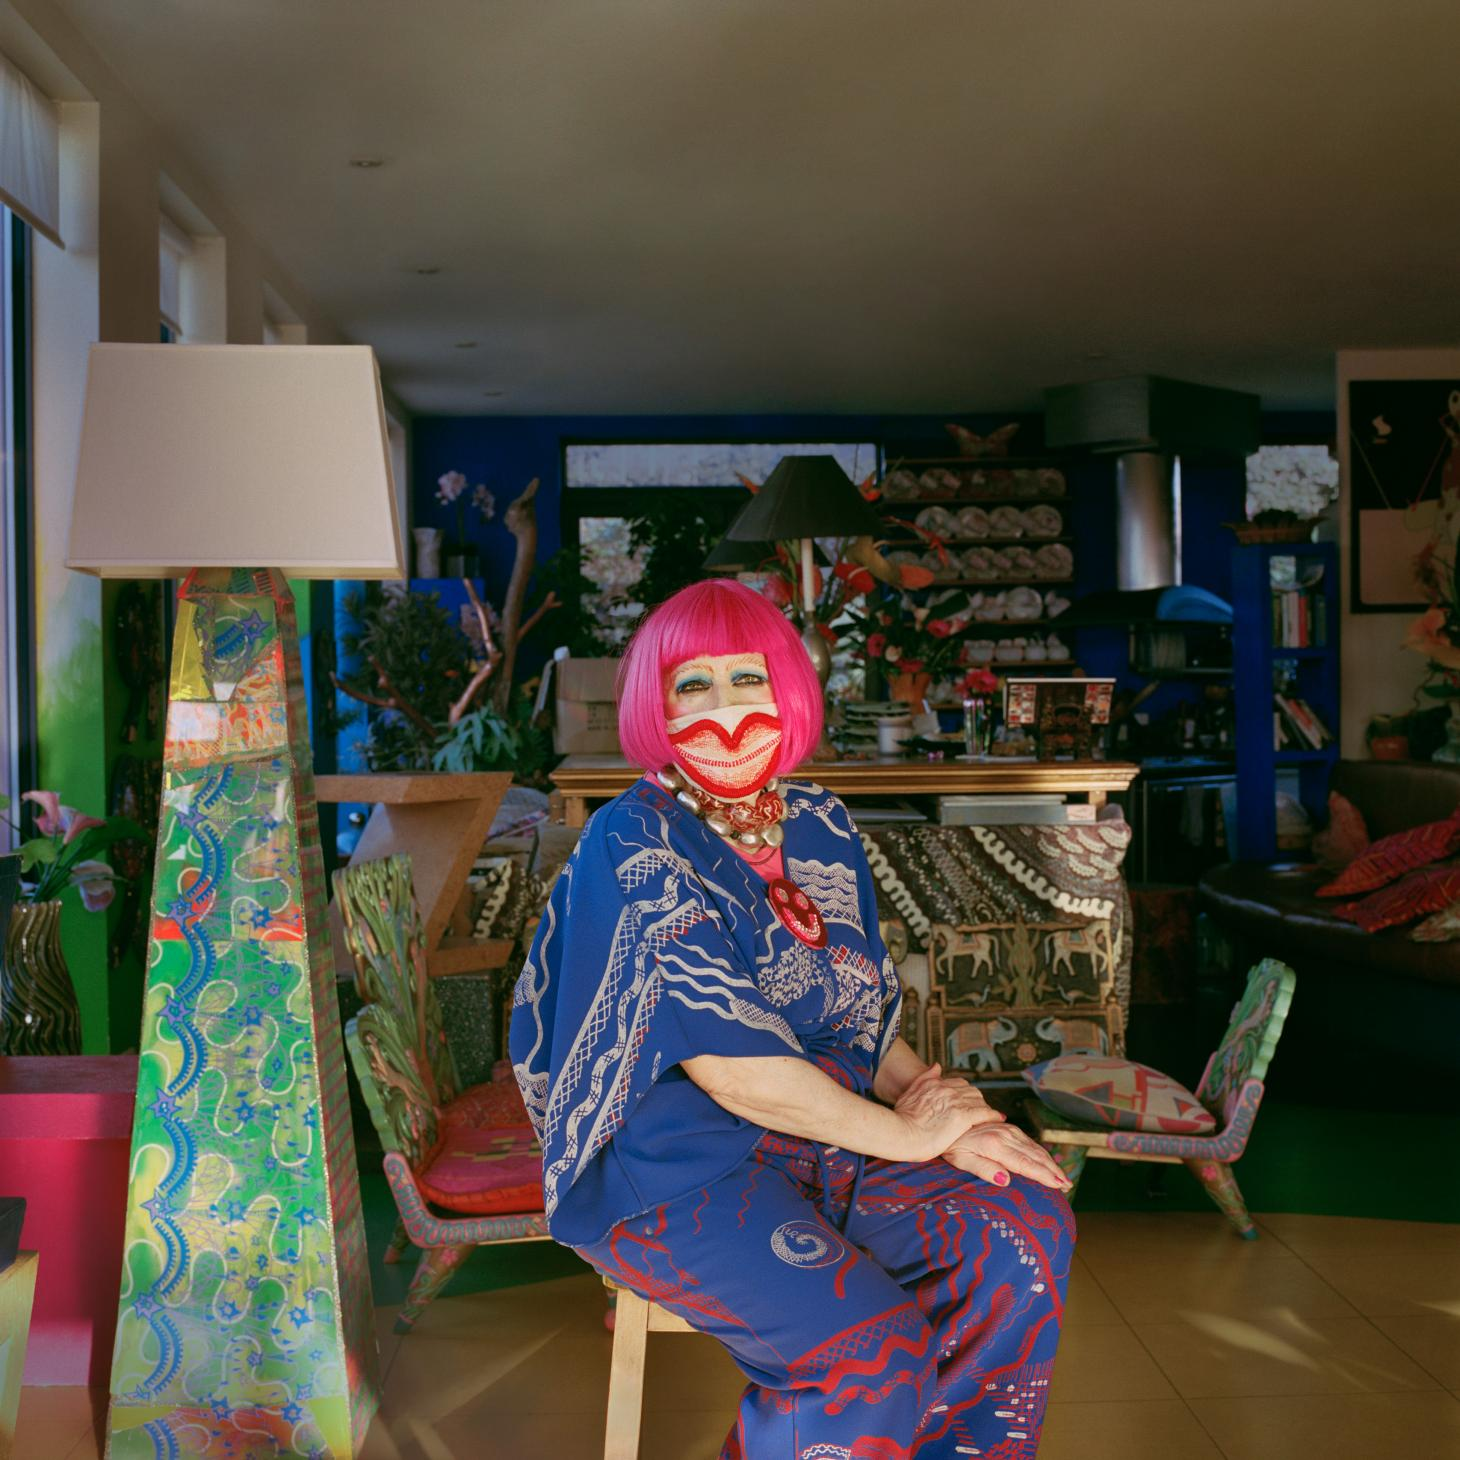 Portait image of Dame Zandra Rhodes wearing a mask shot for Joanna Vestey's Masked portrait series